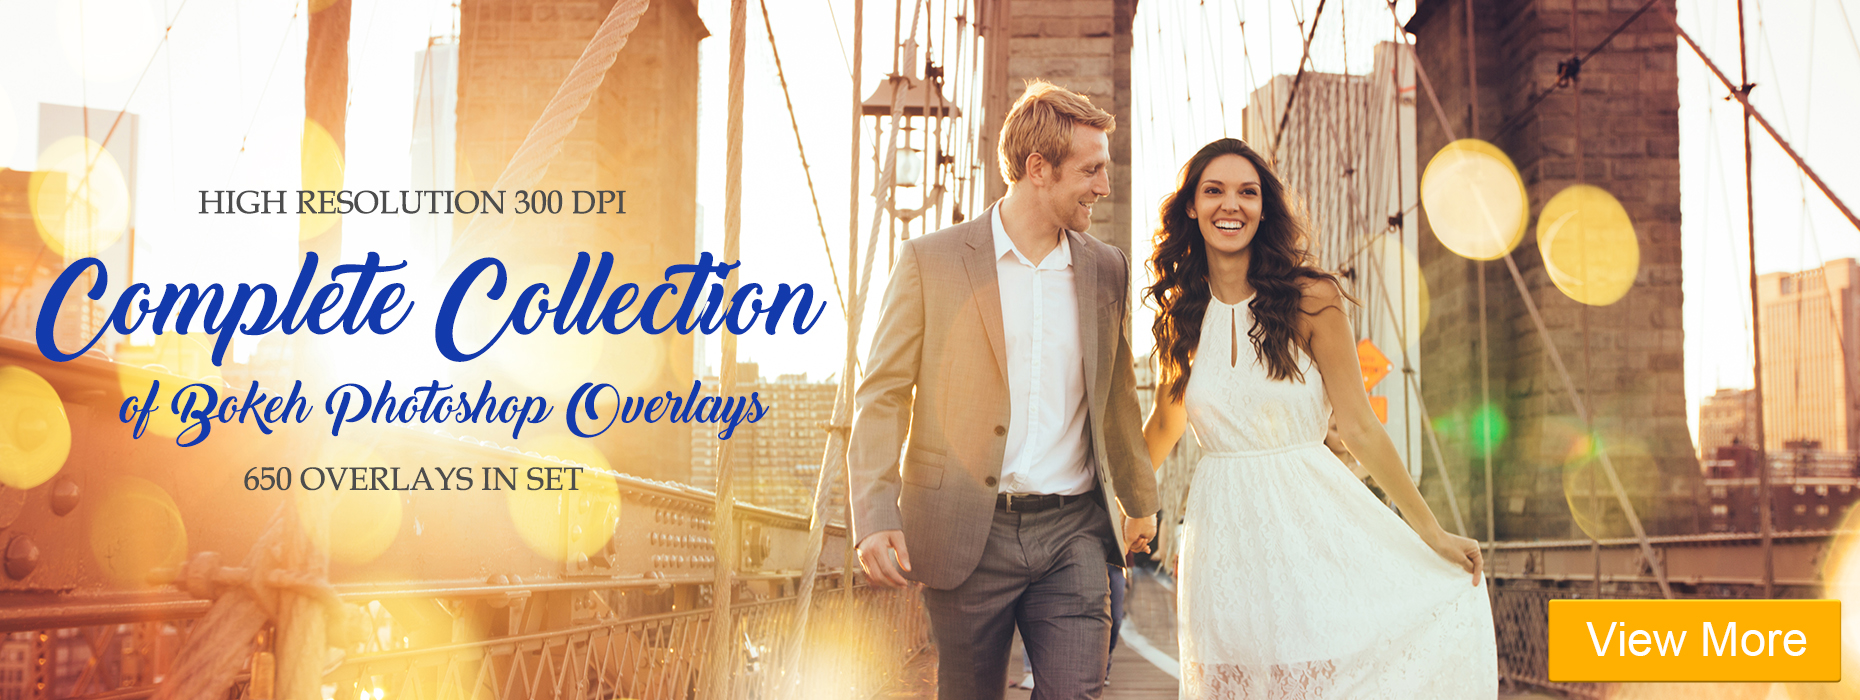 dust overlay photoshop bokeh photoshop overlays collection banner city